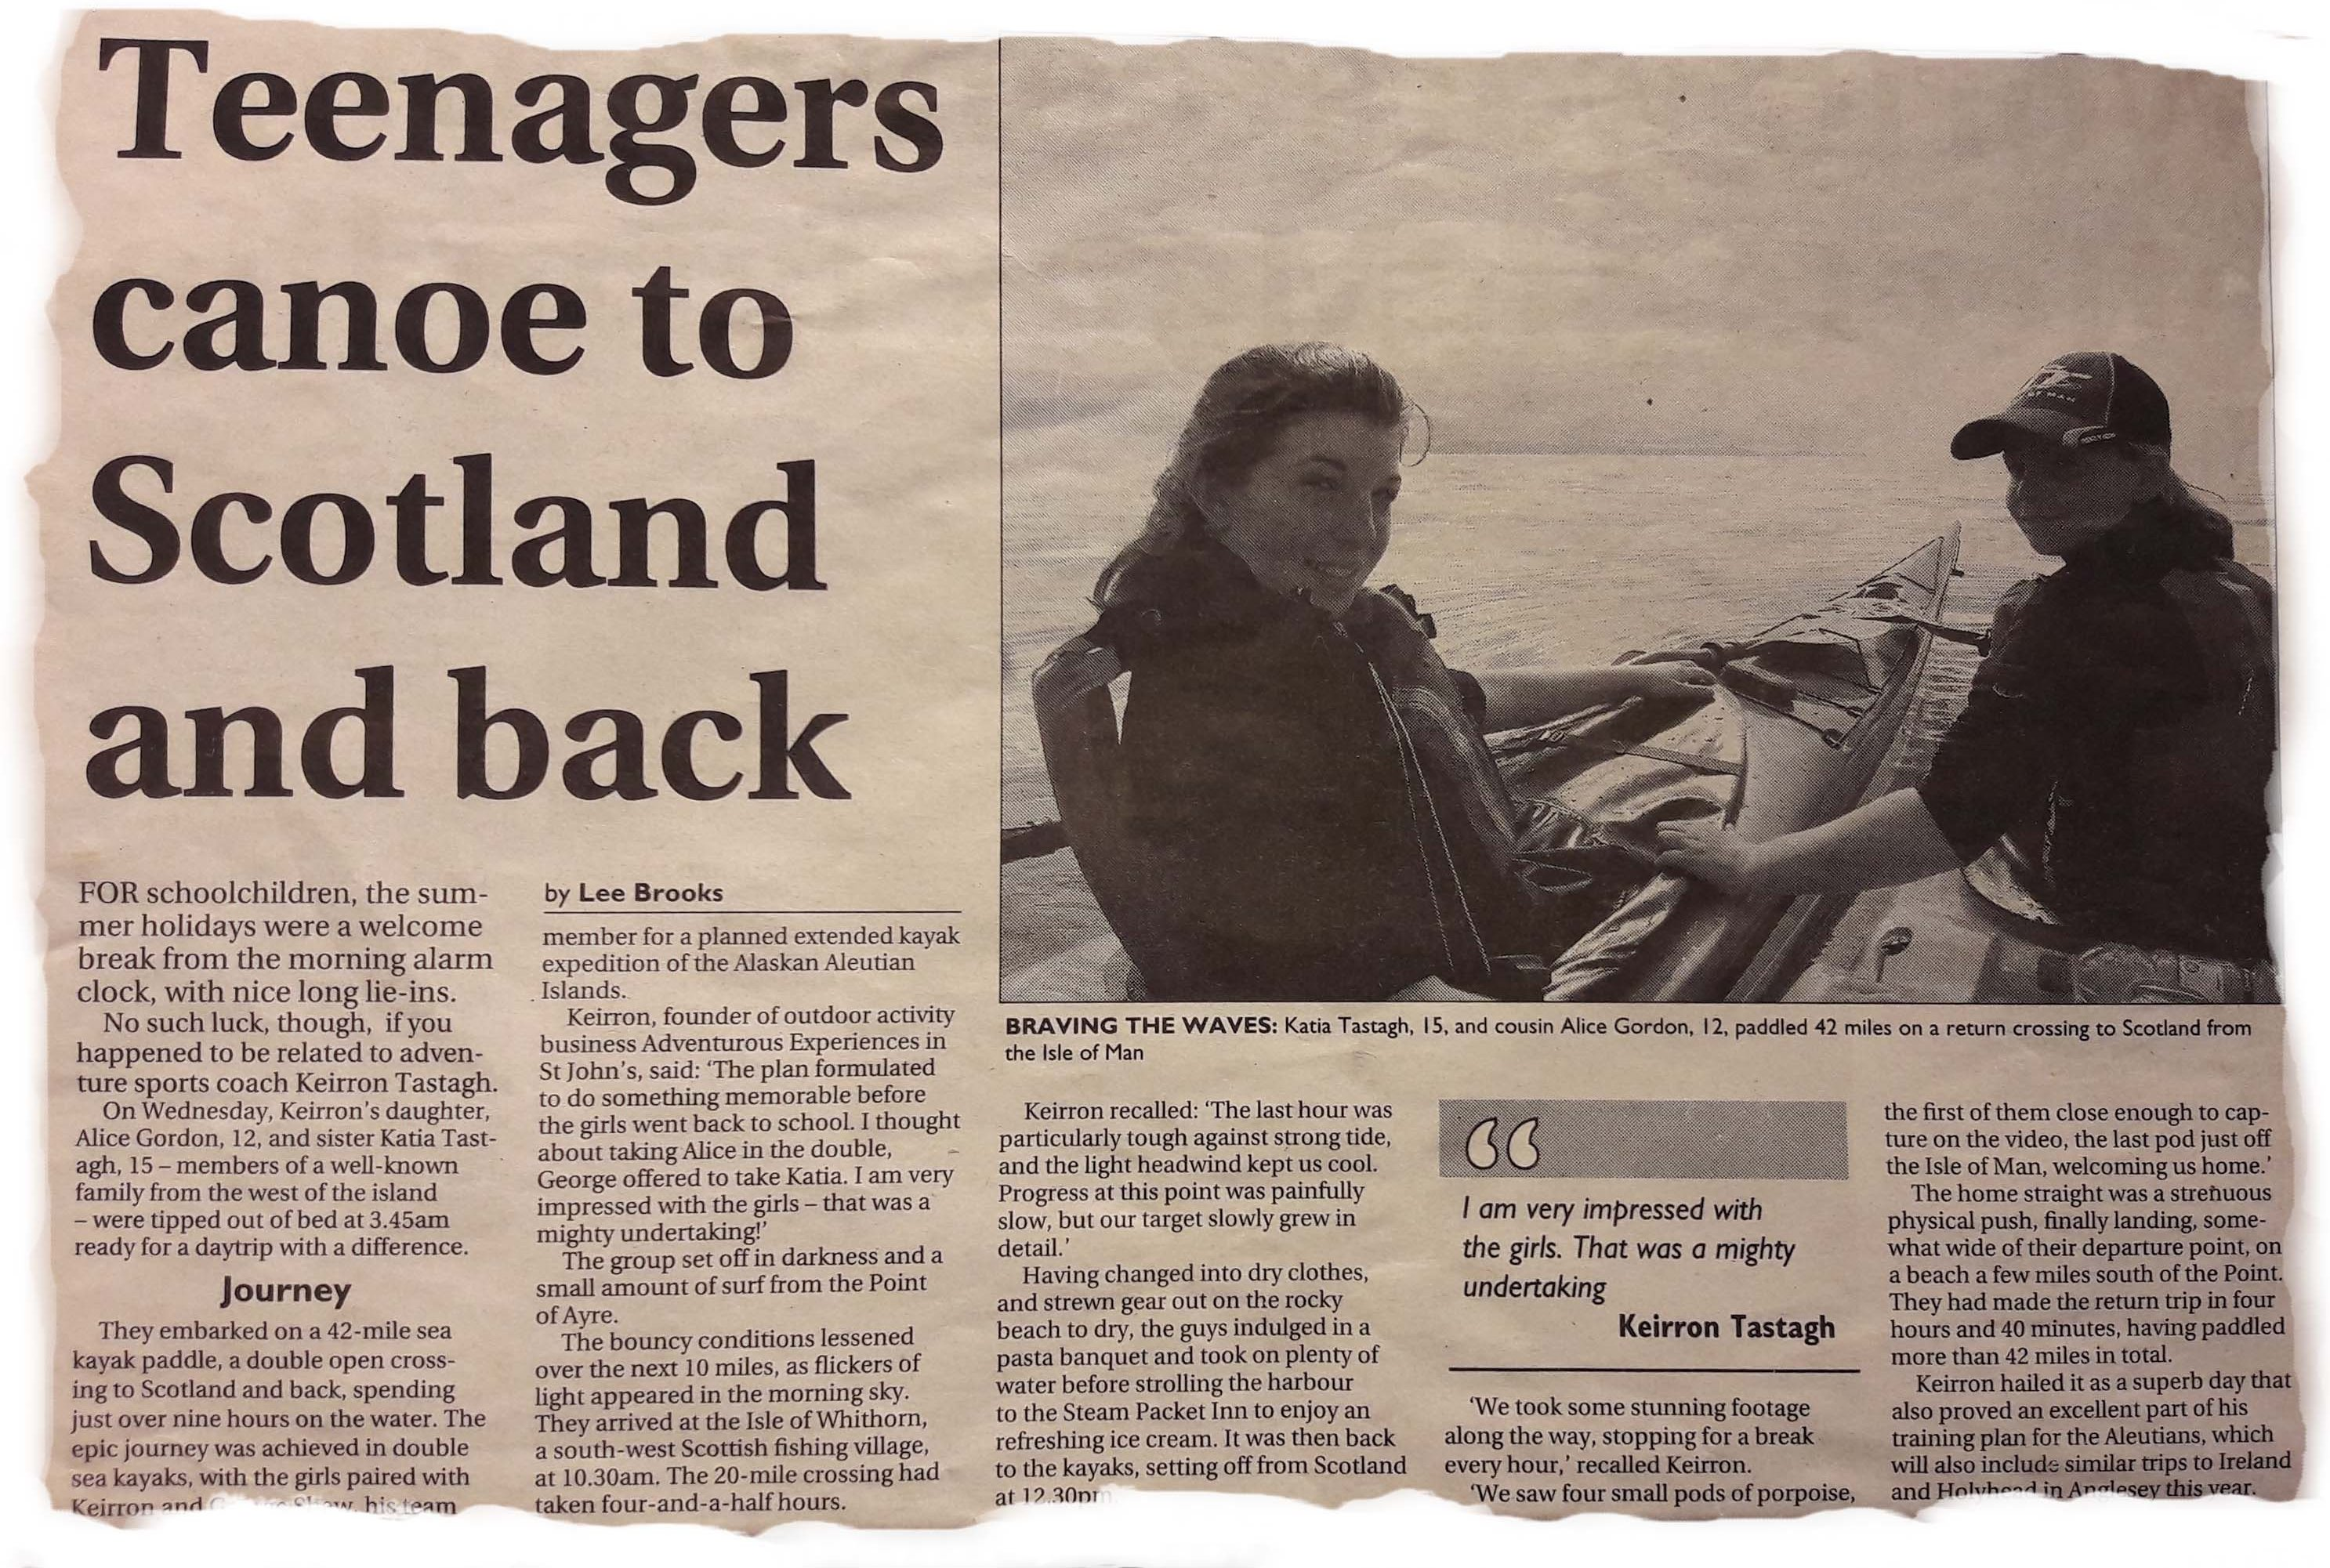 Alice aged 12 and Katia aged 15 kayak to Scotland and back on 31st Aug 2011